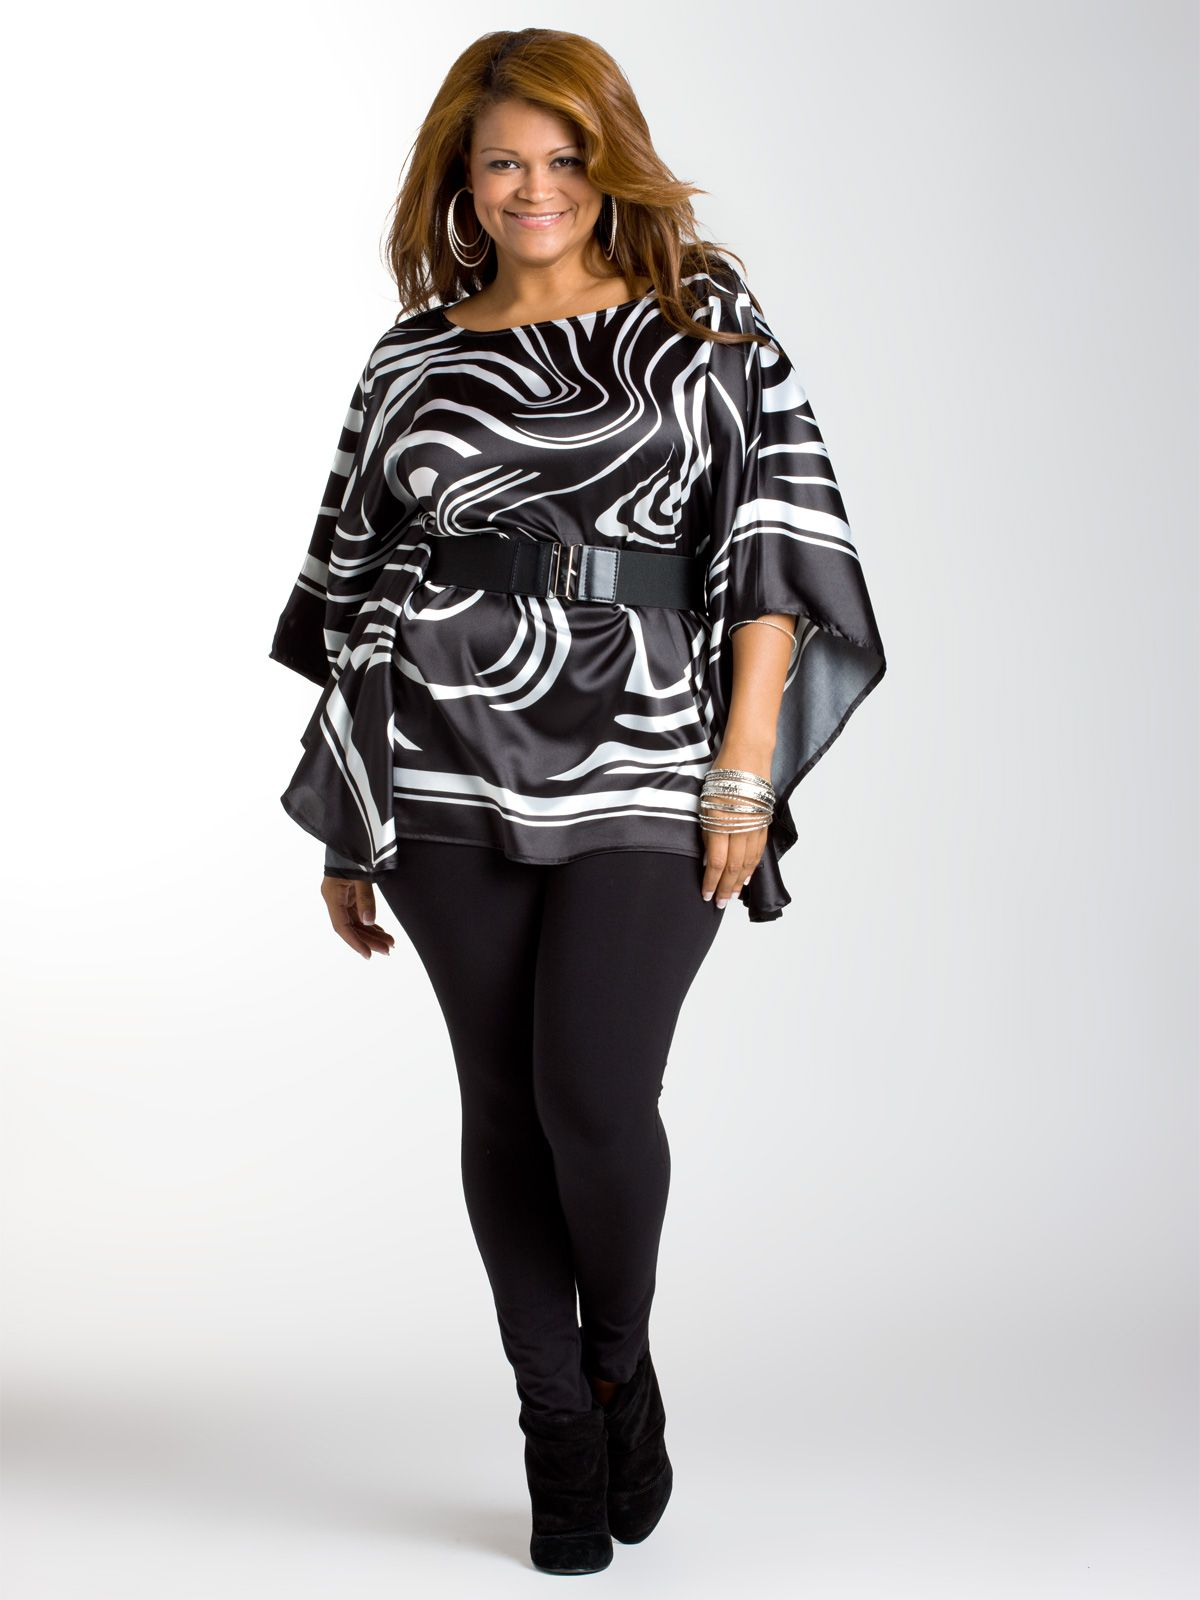 plus size clothing for women | five tips on building up your plus